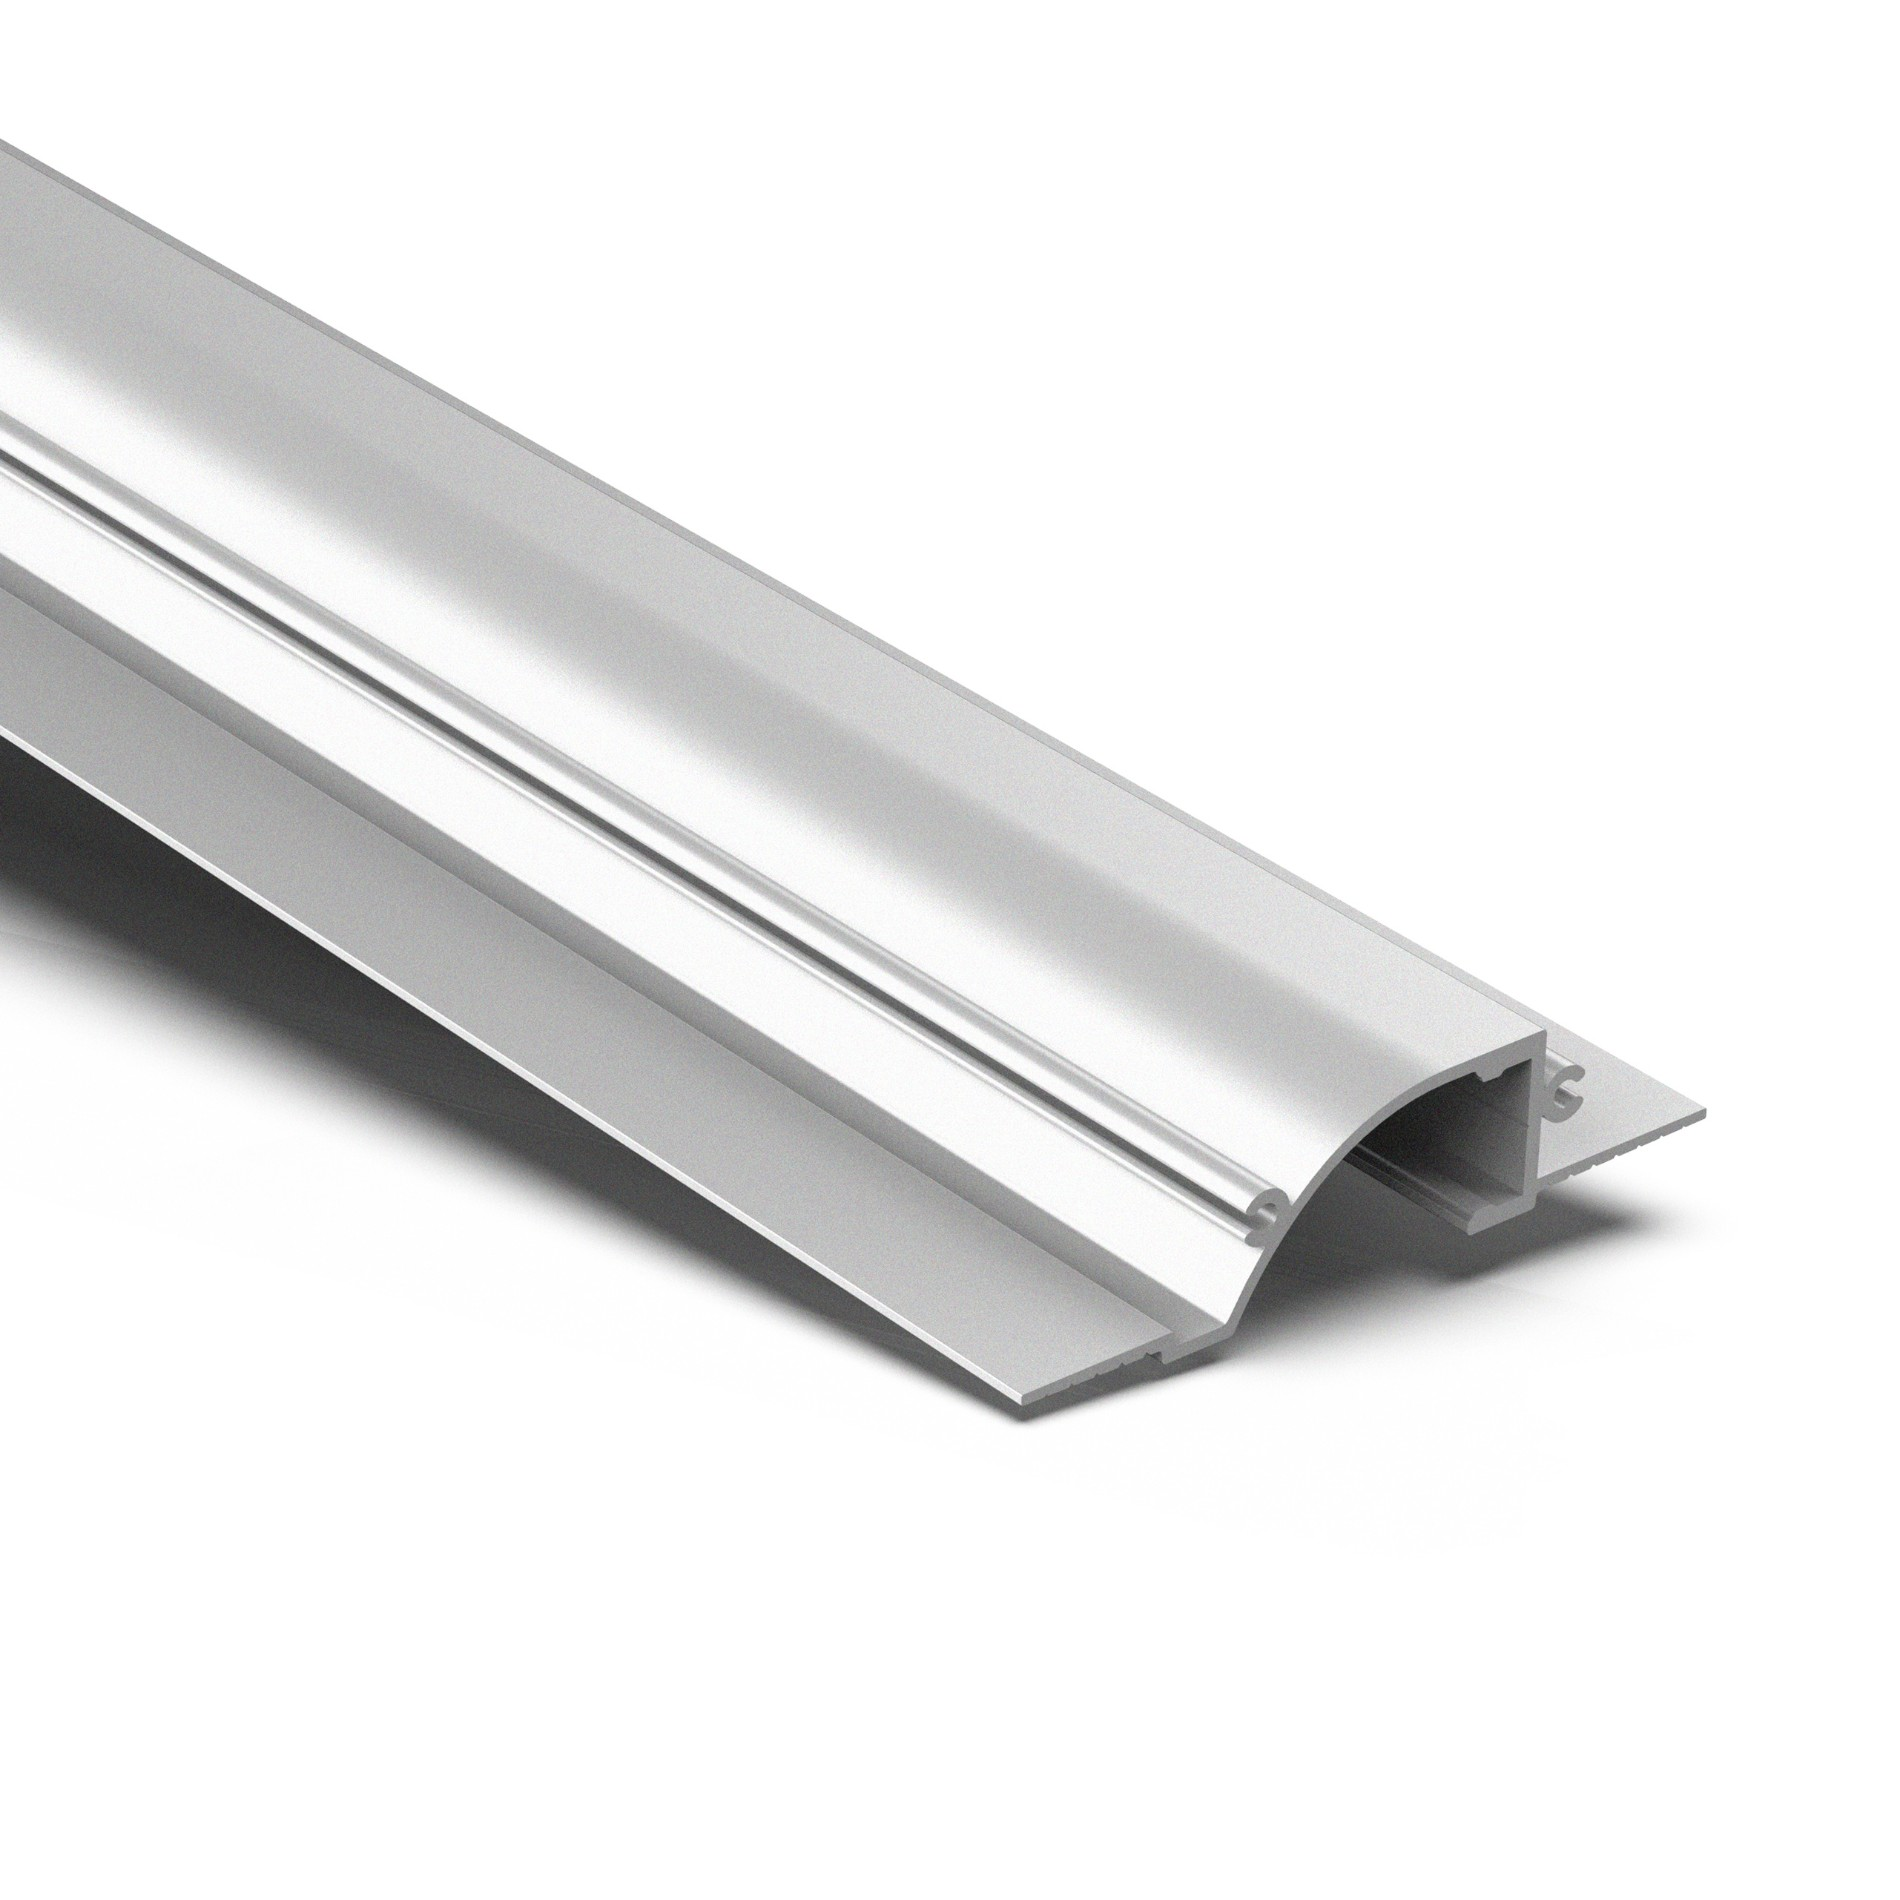 CTW1 Indirect LED Linear recessed trimless ceiling light strip profile 86.5x19.6mm